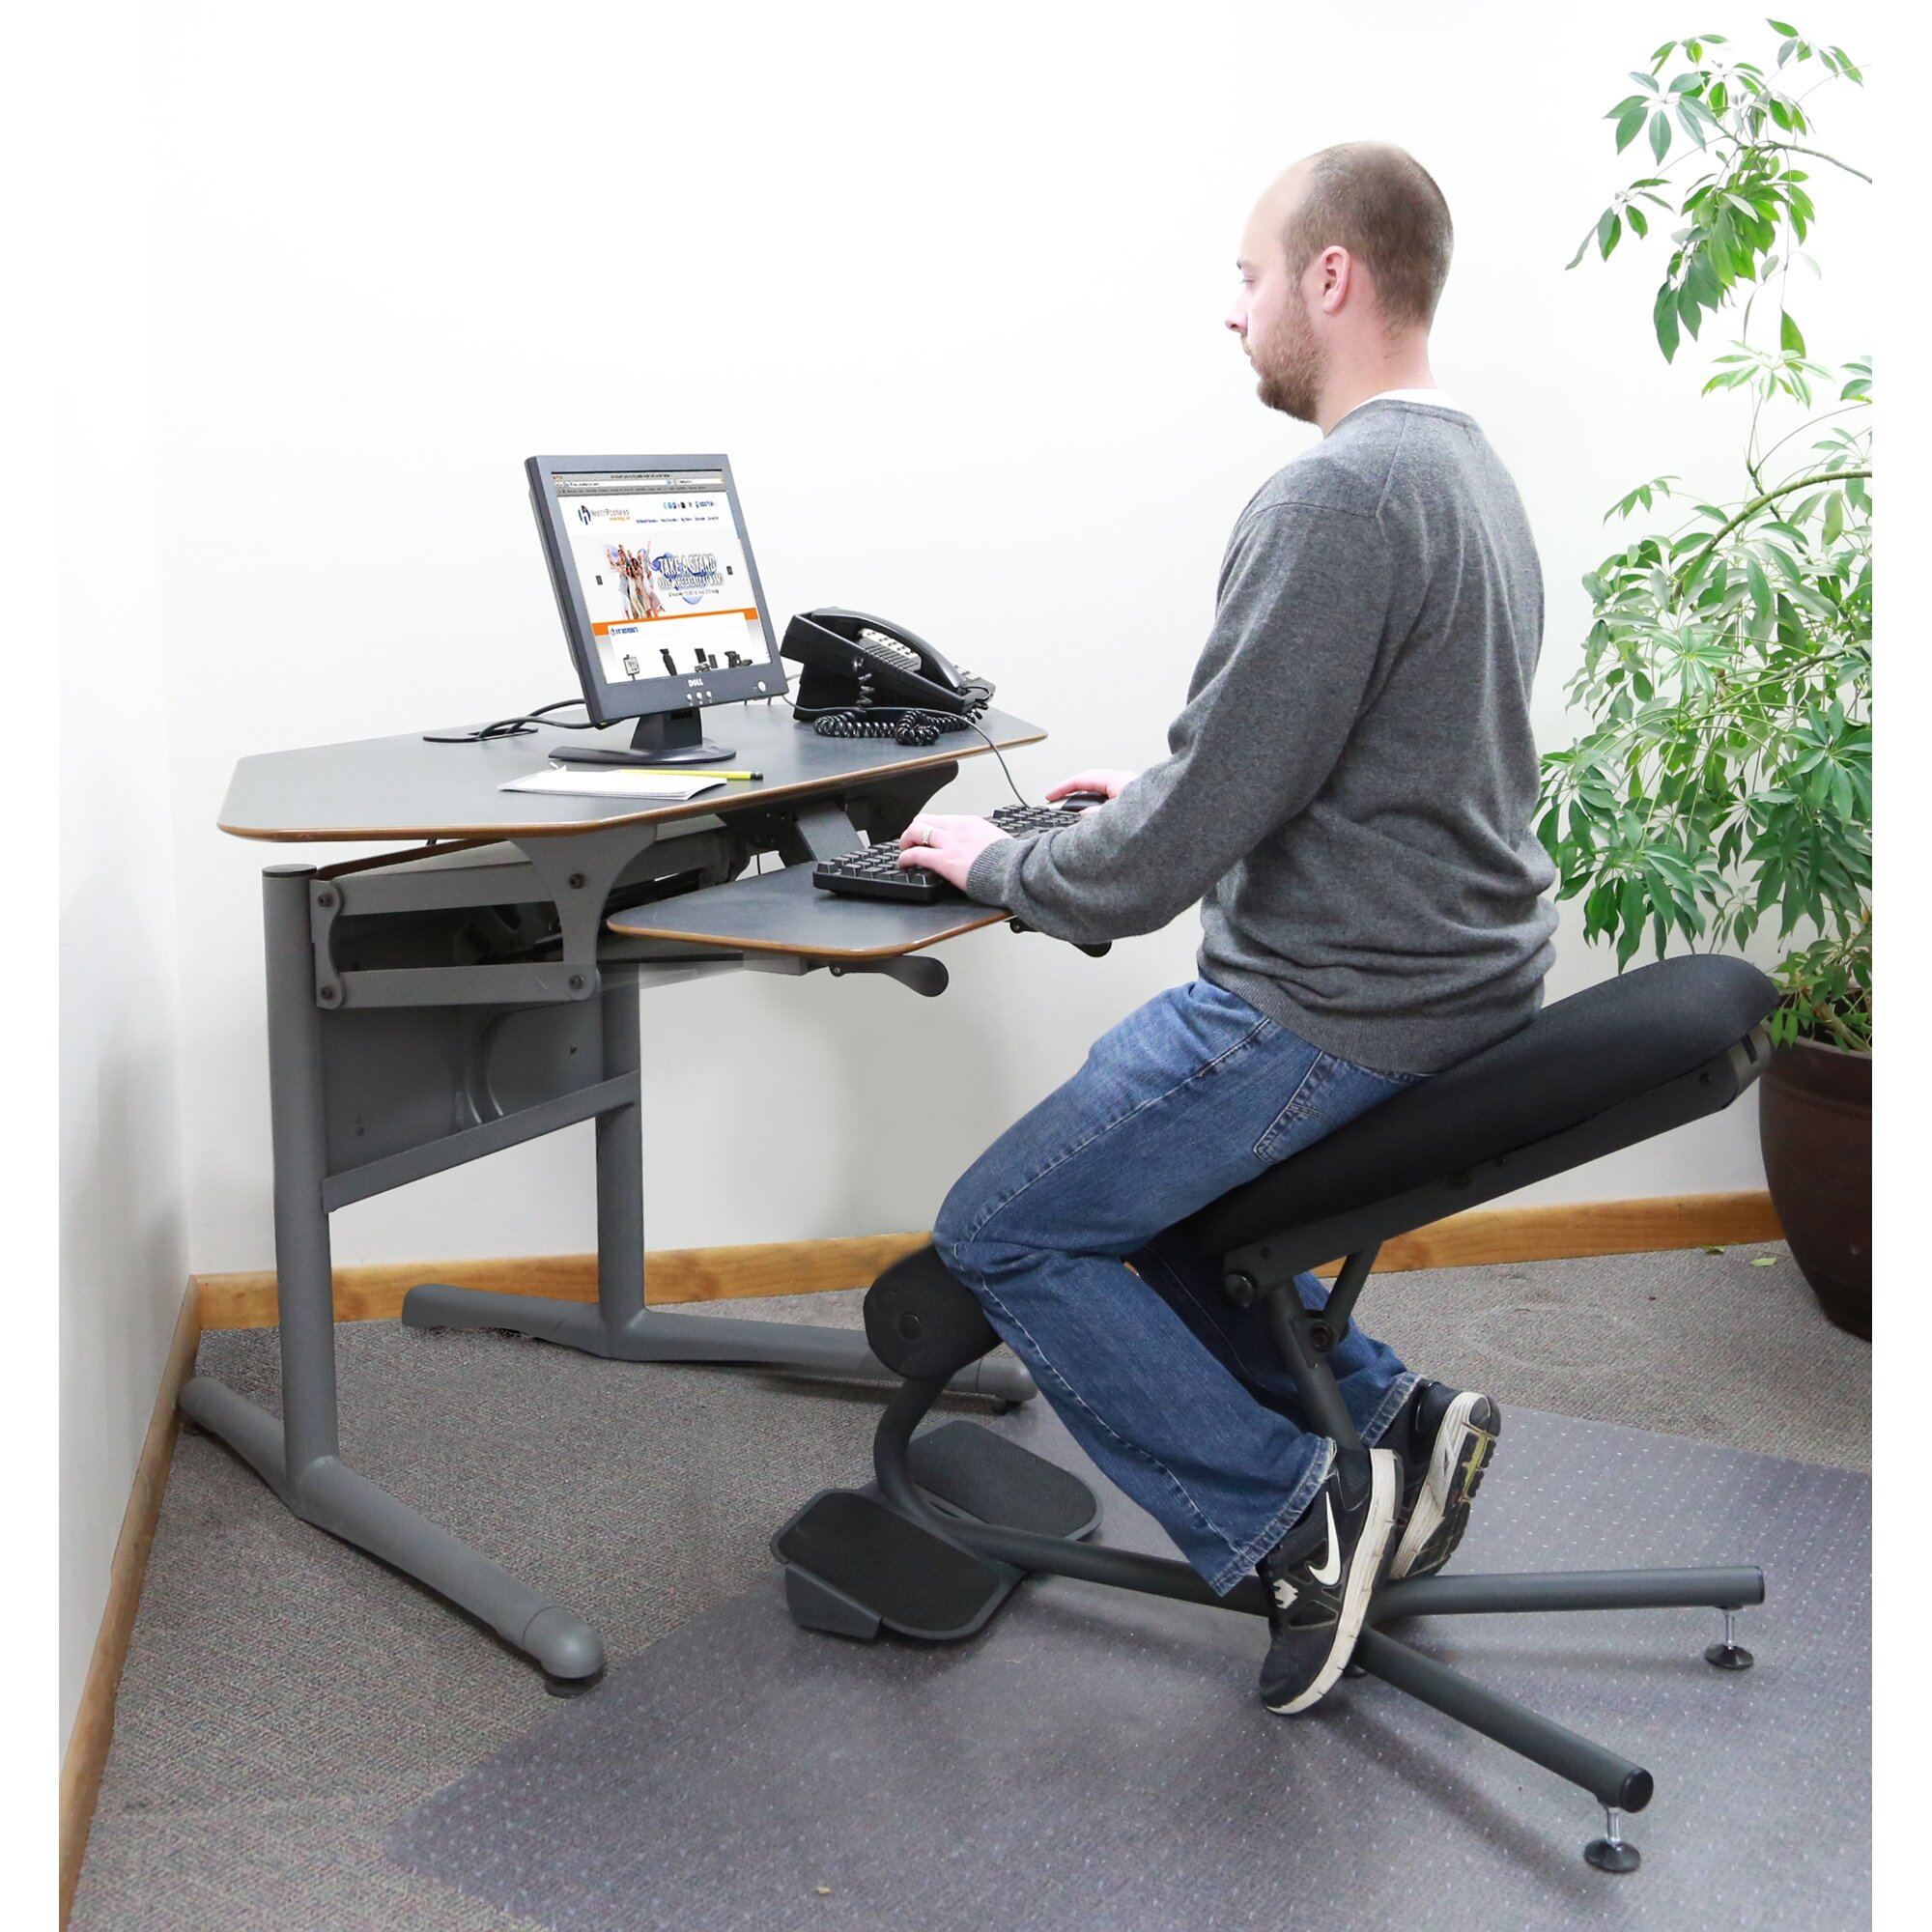 Backless Chair With Knee Rest Free Ergonomic Work Chair Google